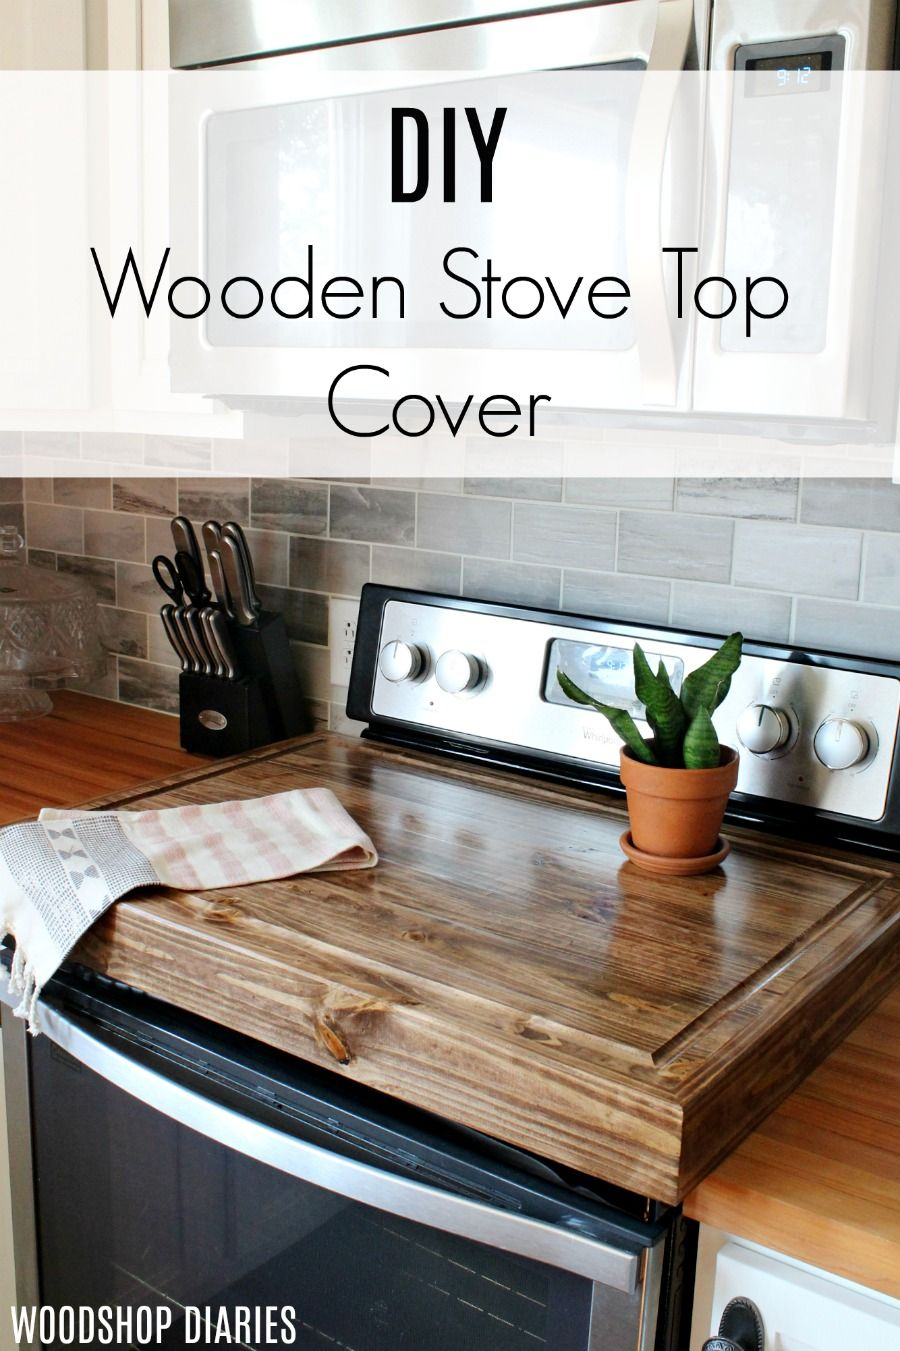 17 diy projects Wooden awesome ideas